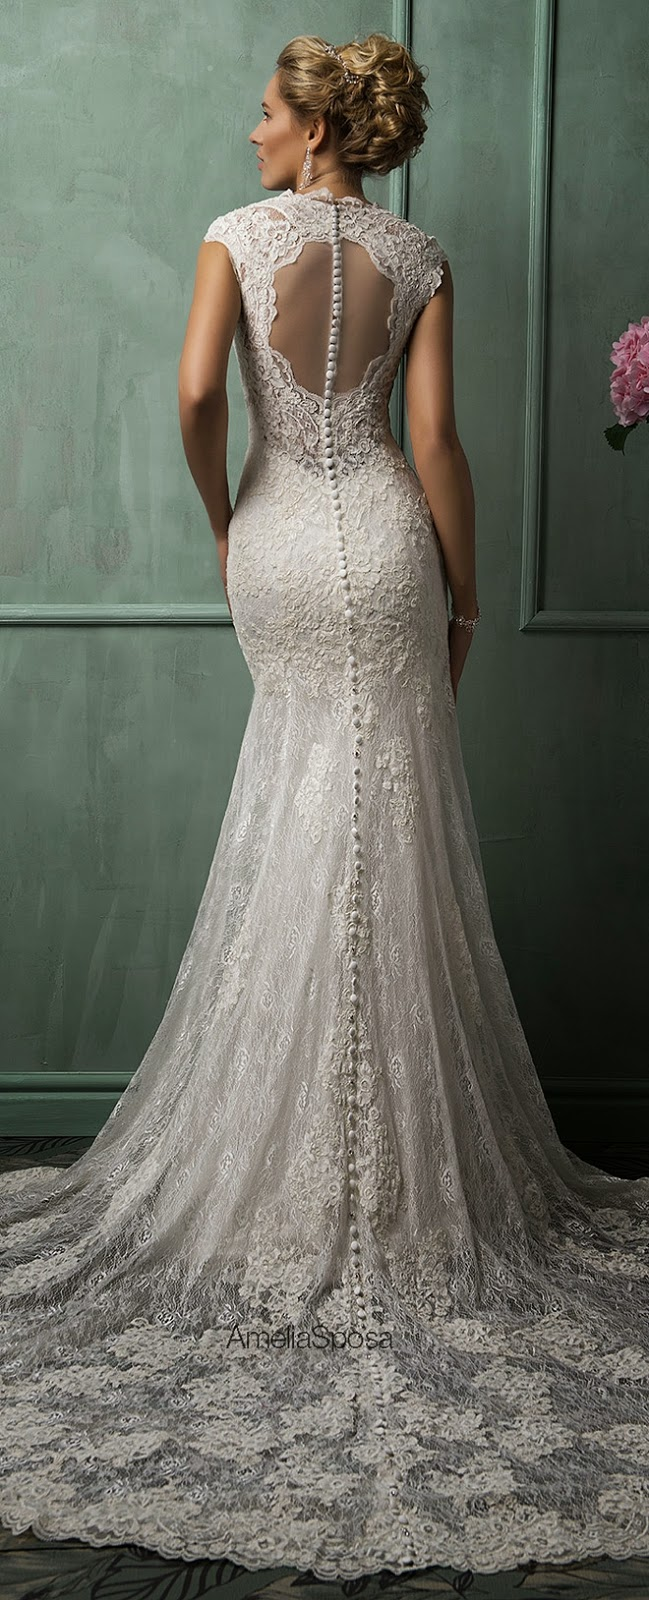 Amelia sposa 2014 wedding dresses belle the magazine for Amelia sposa wedding dress